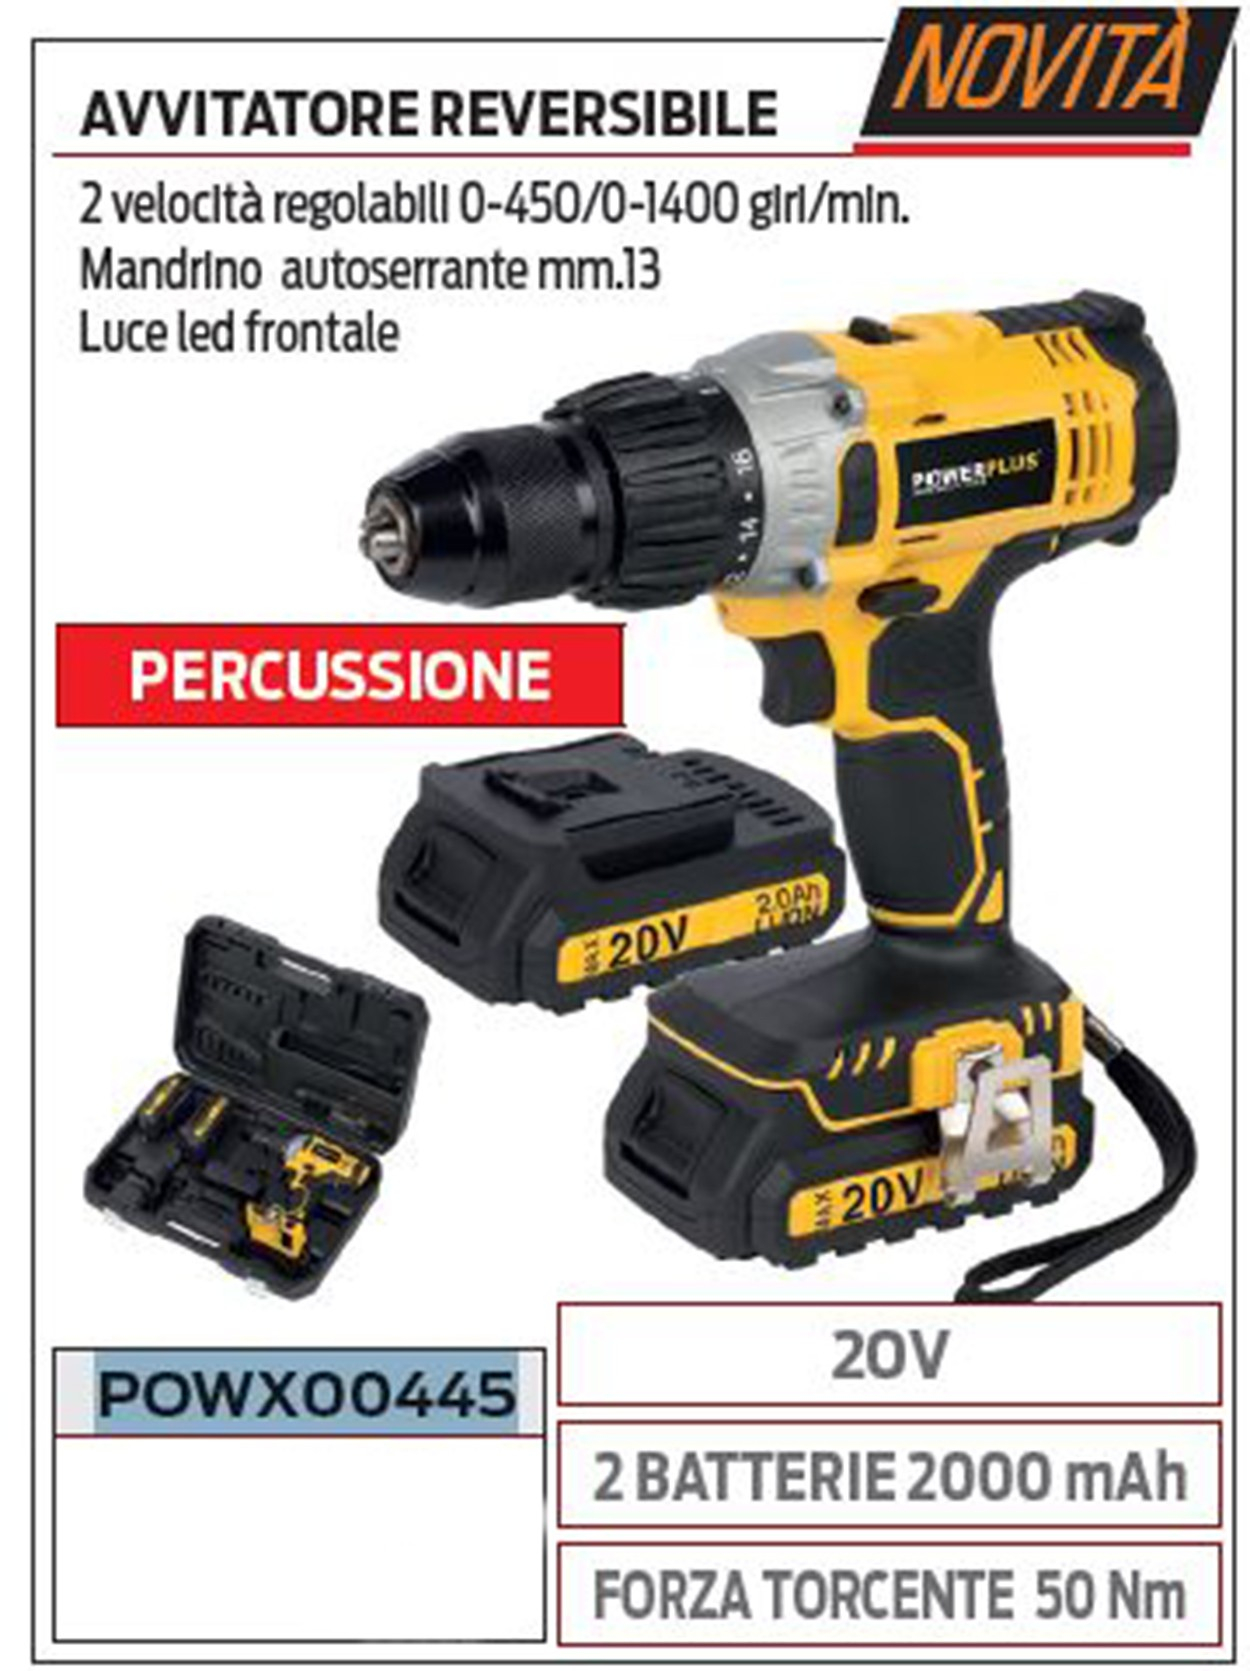 Powerplus POW00445 avvitatore reversibile a percussione 20V incluse 2 batterie 2000 mAh